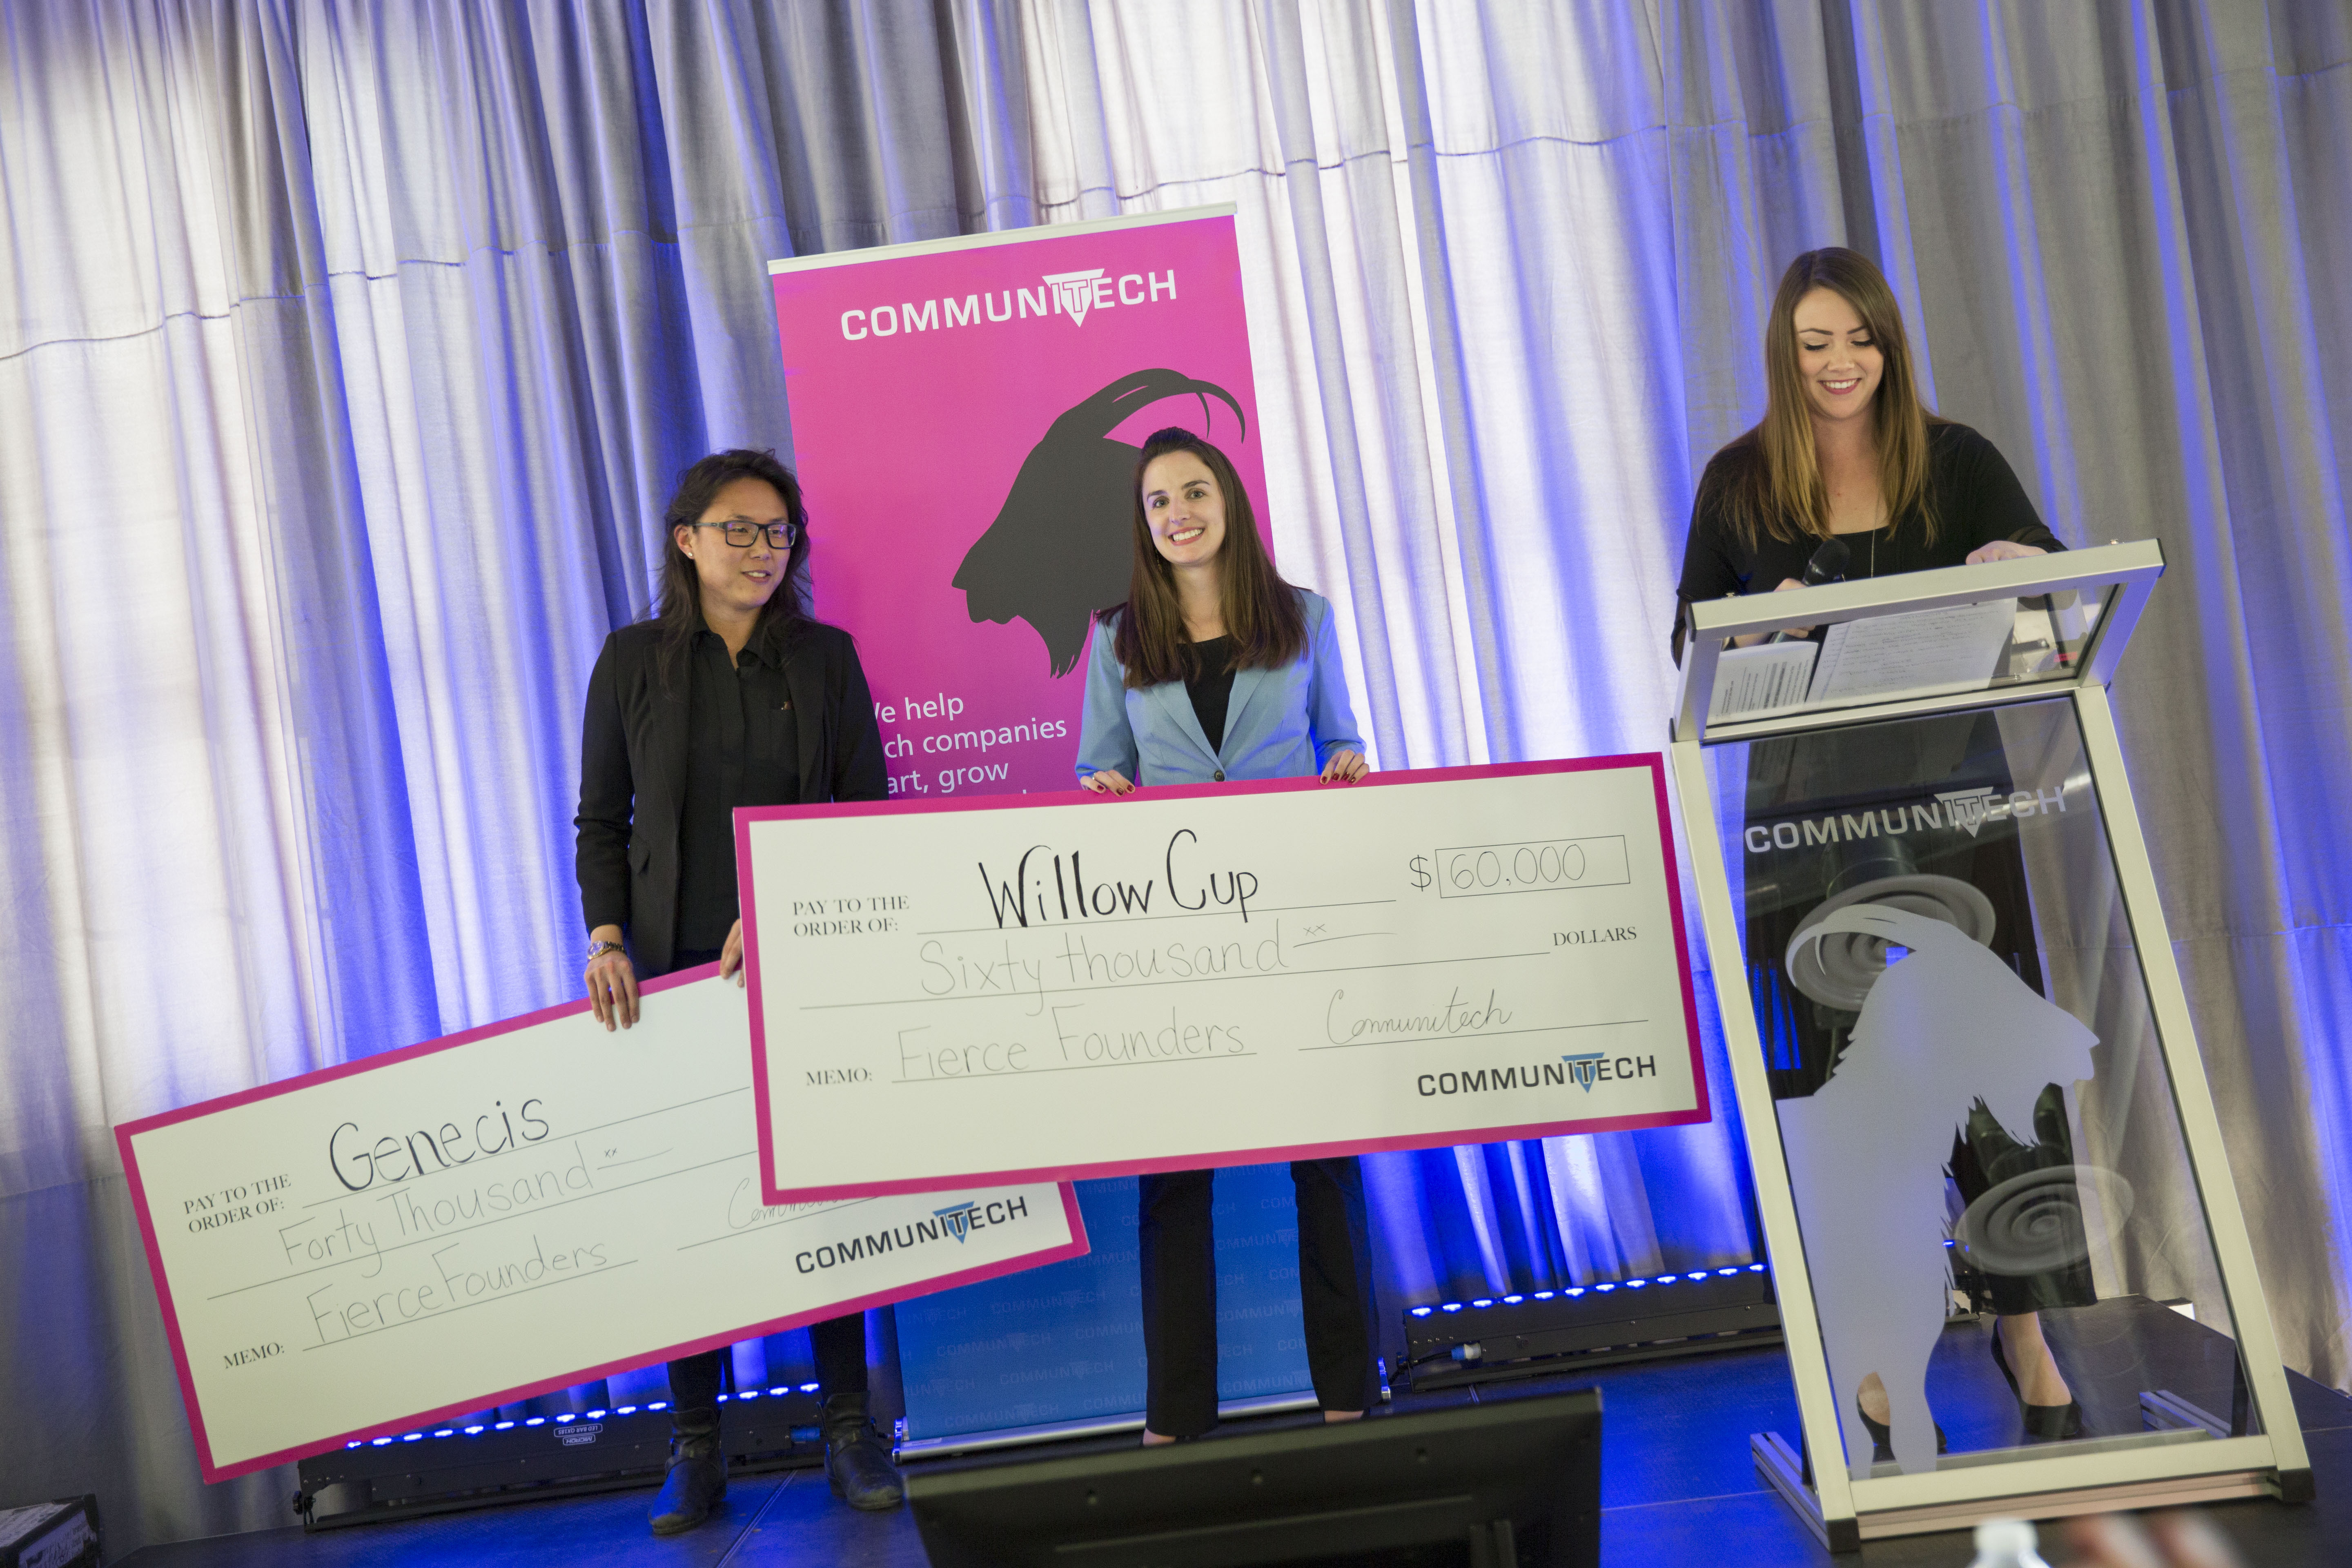 Winners of the Communitech Fierce Founders Bootcamp finale. (Photo: Business Wire)